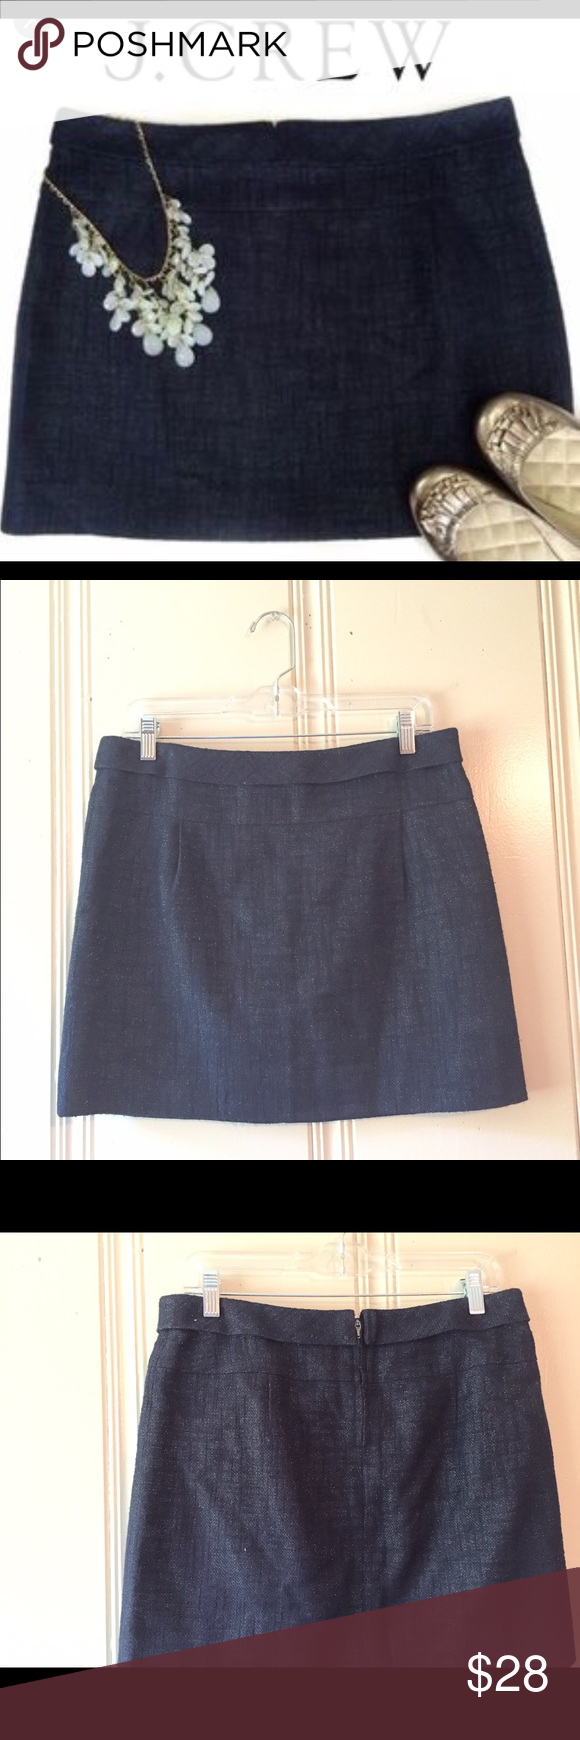 J.CREW navy sparkle miniskirt SZ 6 GORGEOUS J. Crew sparkle mini skirt SZ 6. Great year round skirt for going out! Wear it with tank now & pretty top & leggings in fall for a touch of sparkle & glamour. Zipper at back w/hook & eye closure. Cotton/linen blend & fully lined so super soft & comfy. Very slight piling at side only noticeable due to extreme close up to show silver sparkle in fabric. Waist is 32 in, length is 16 inches. Skirts Mini